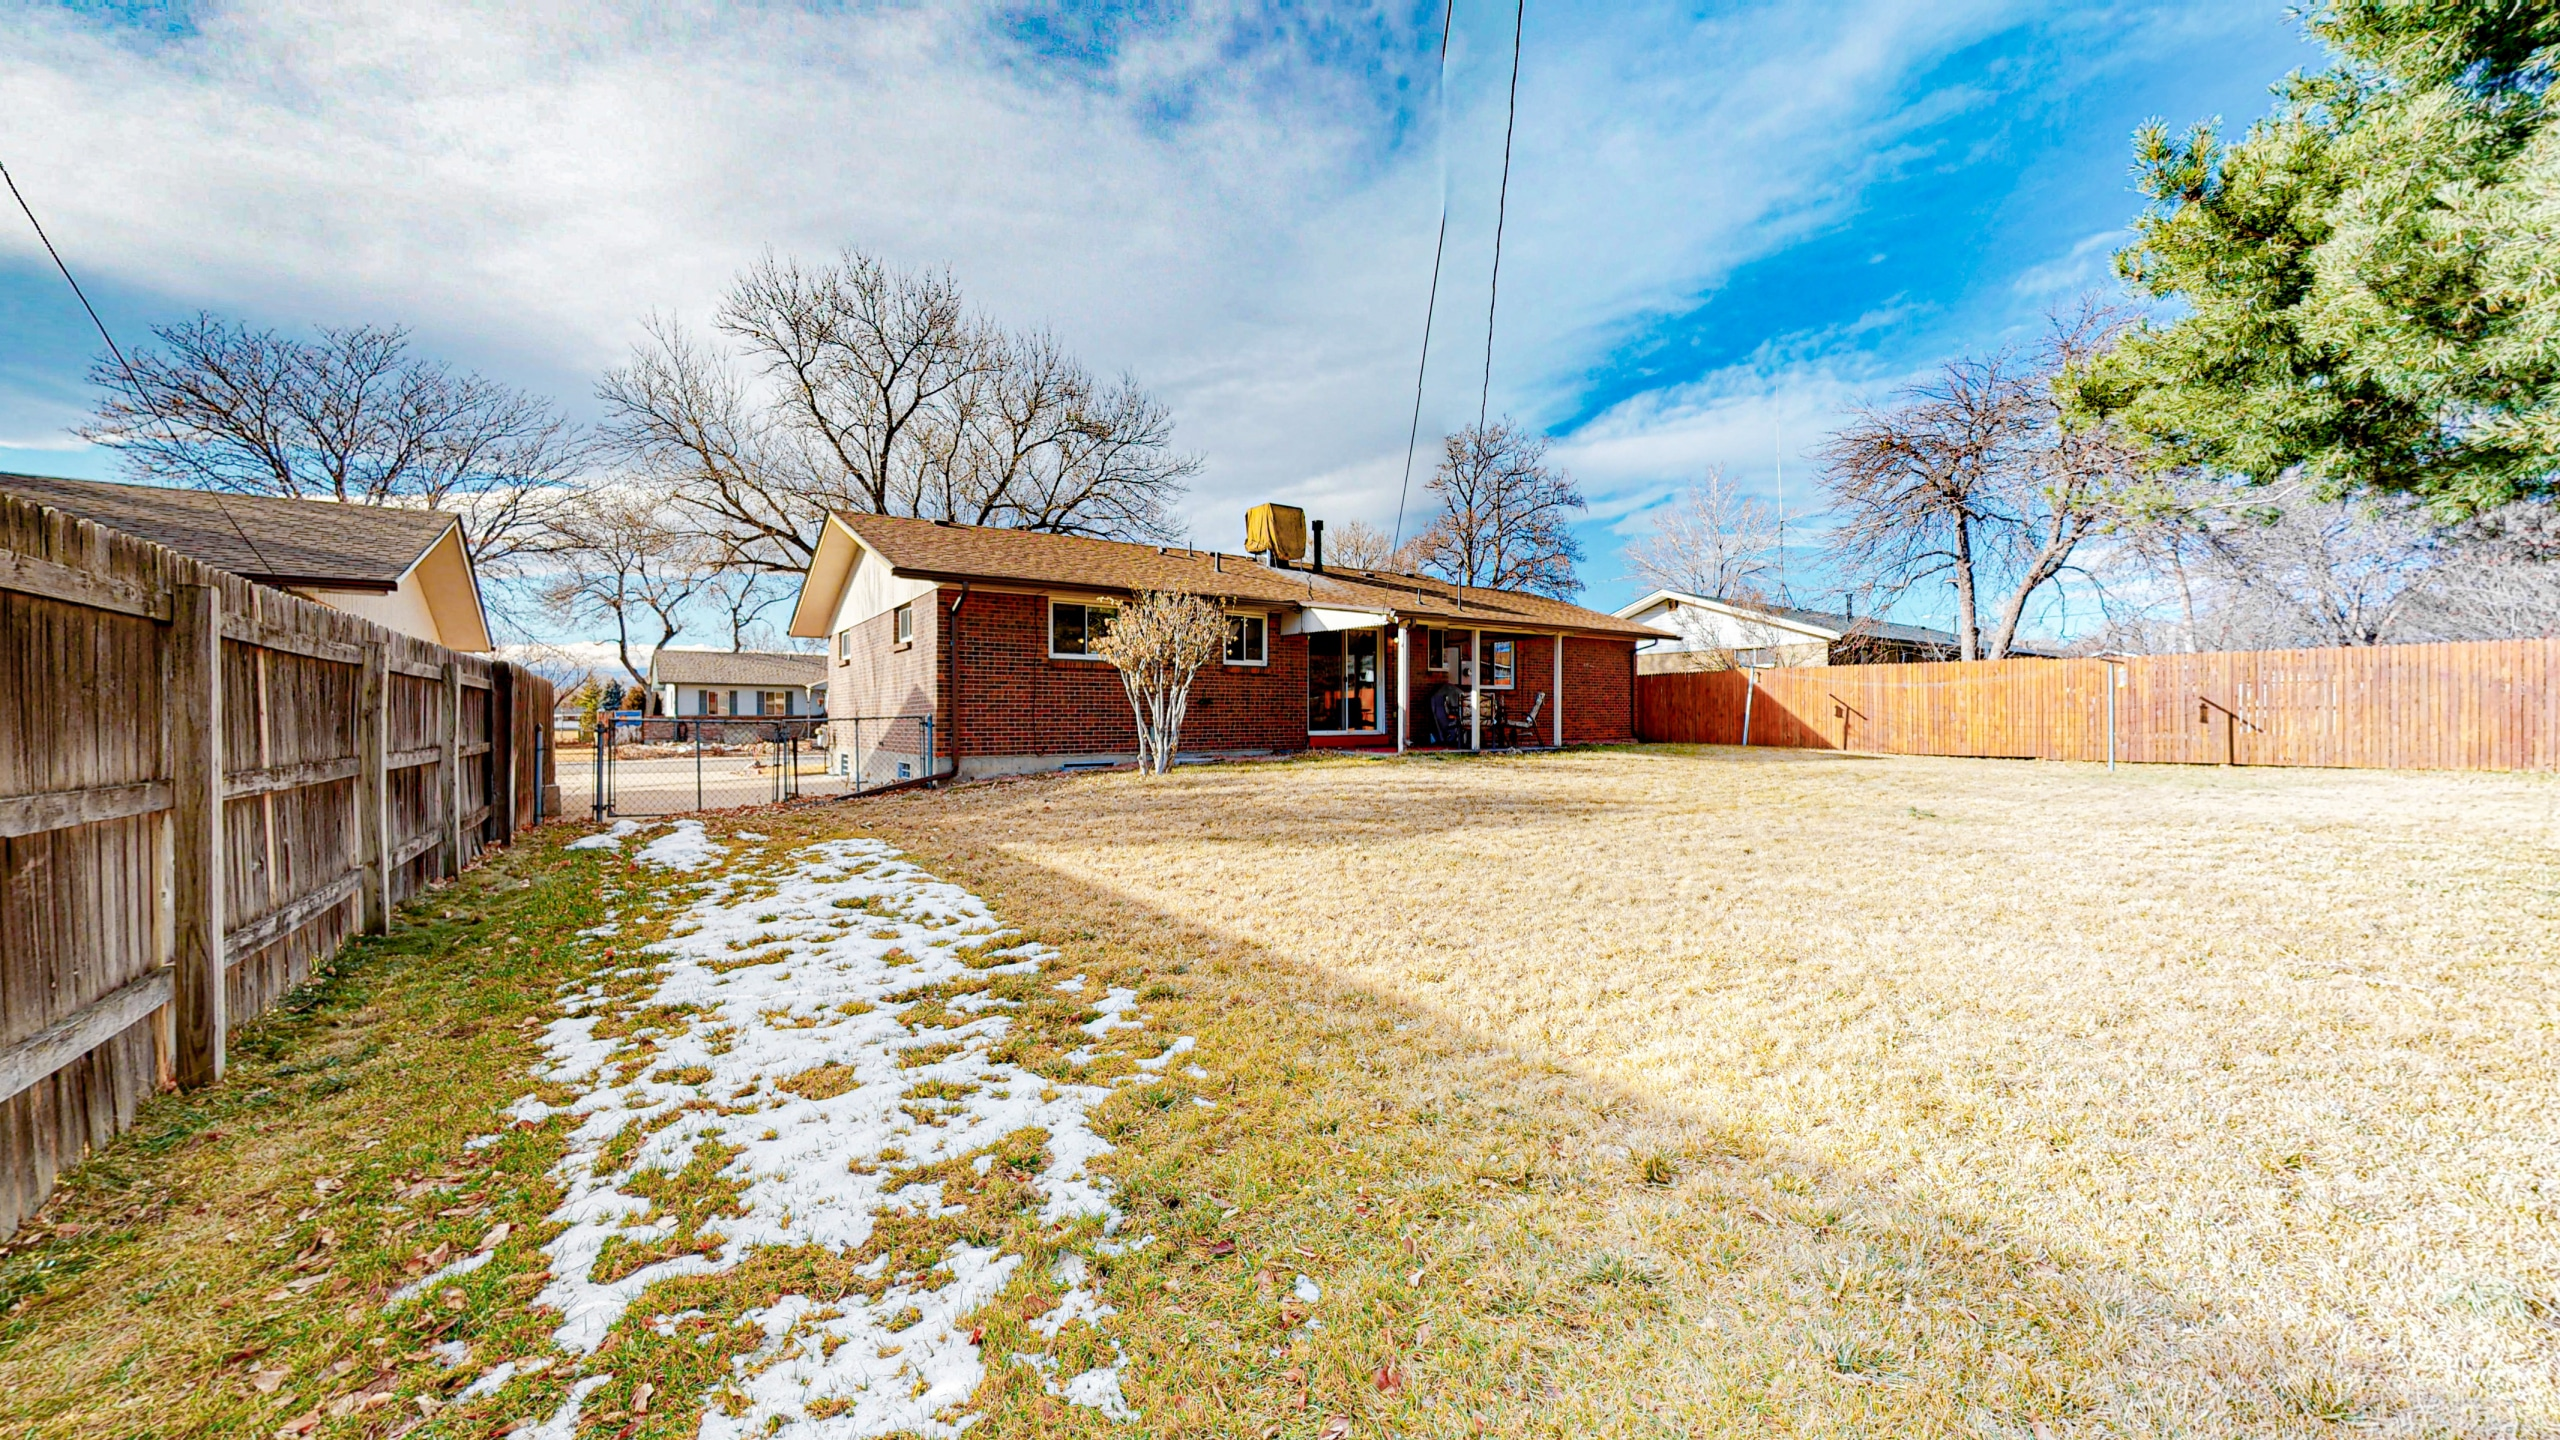 Arvada Home For Sale, Big Back Yard, Covered Patio, Red Brick Home